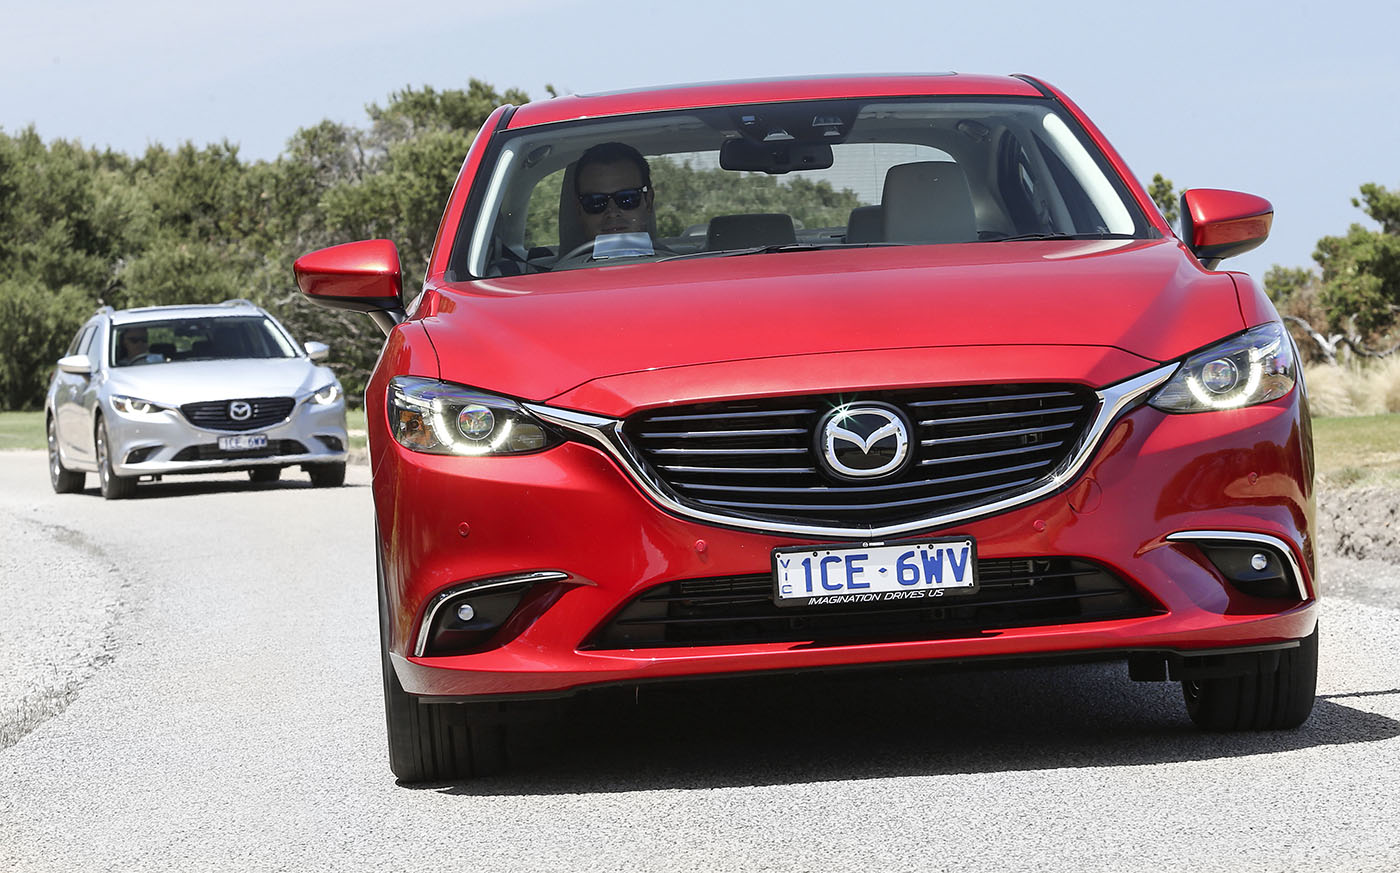 2015 Mazda6: Price And Features For Australia